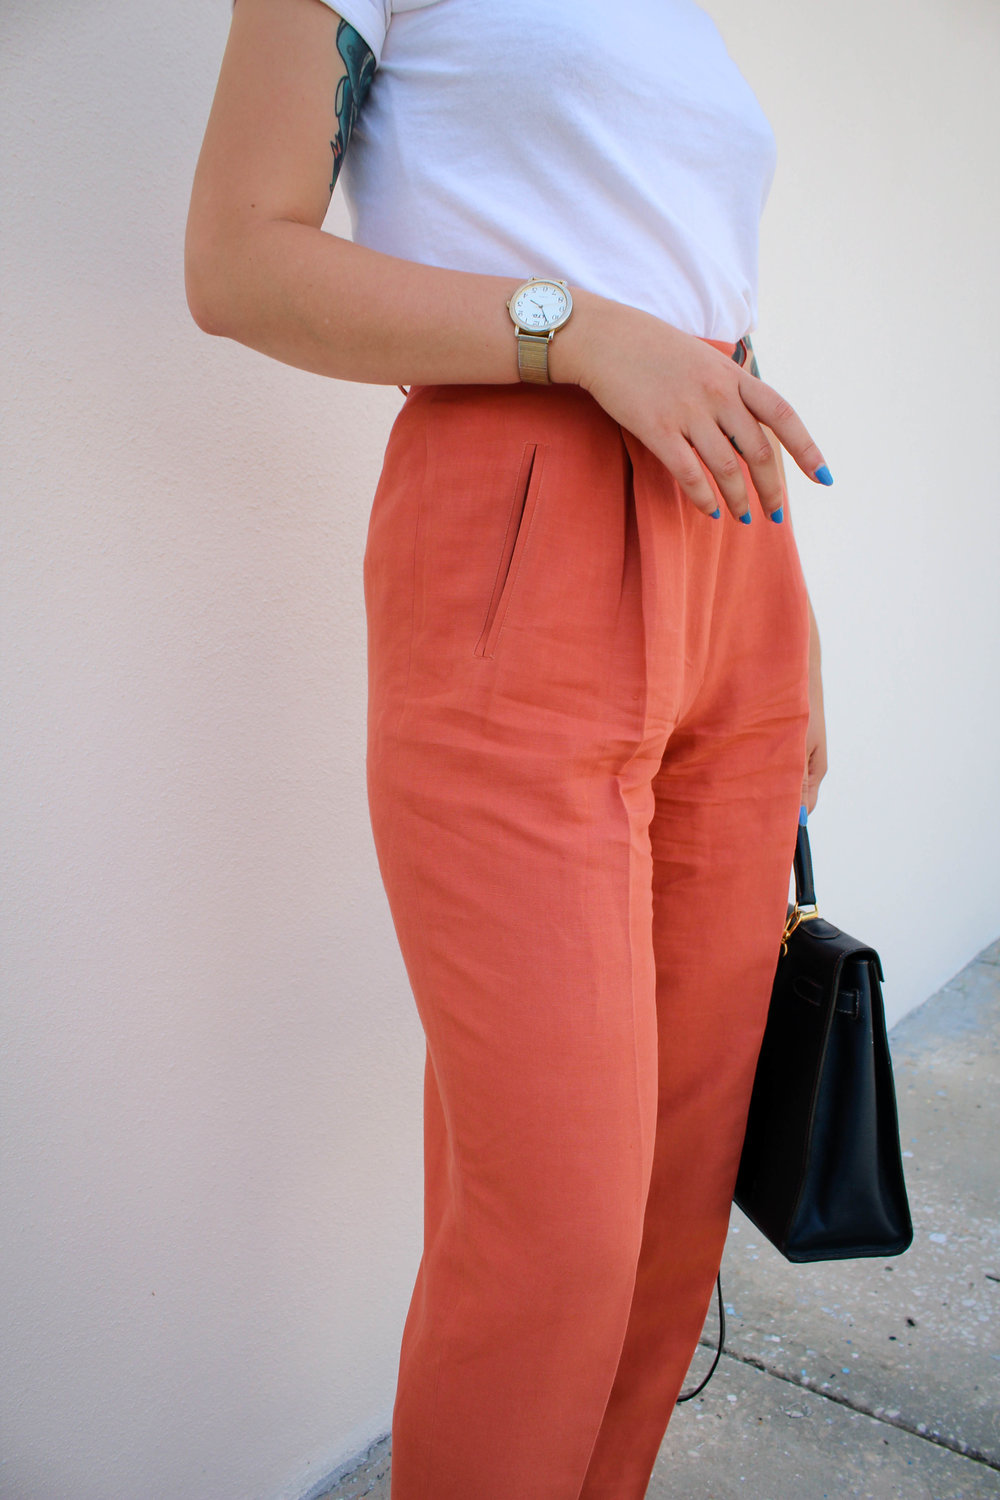 howtostyletrousers-12.jpg